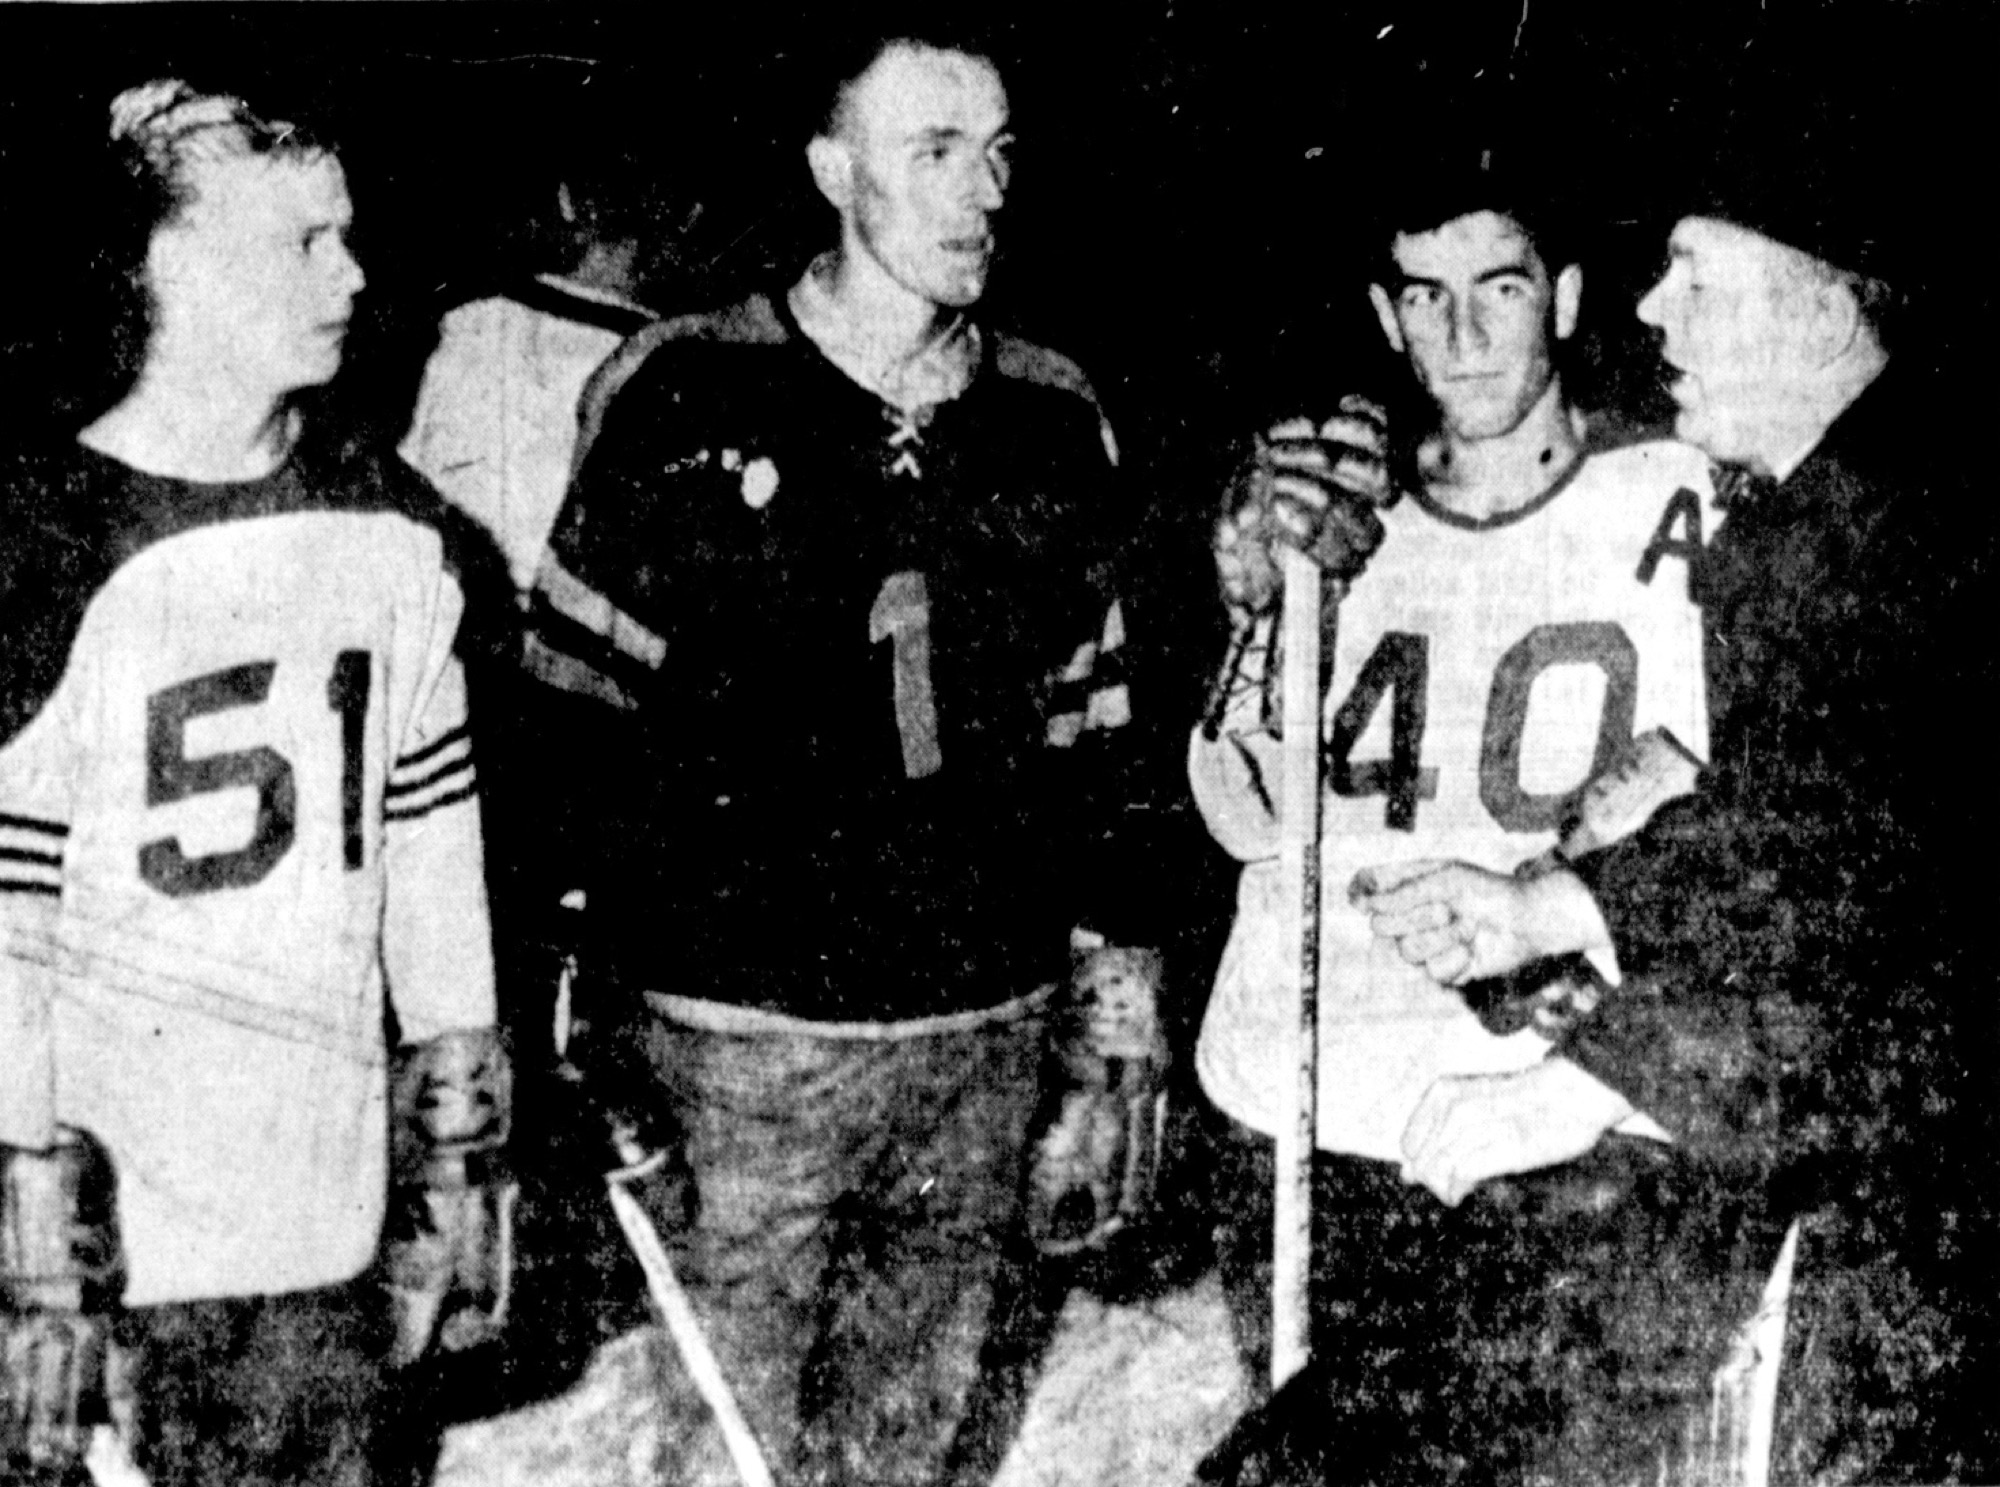 Brandon Wheat Kings coach Eddie Dorohoy, right, speaks to Juha Widing, Larry Brown and Erv Ziemer on Sept. 24, 1965 during the team's training camp for the 1965-66 season. More than 110 players attended.